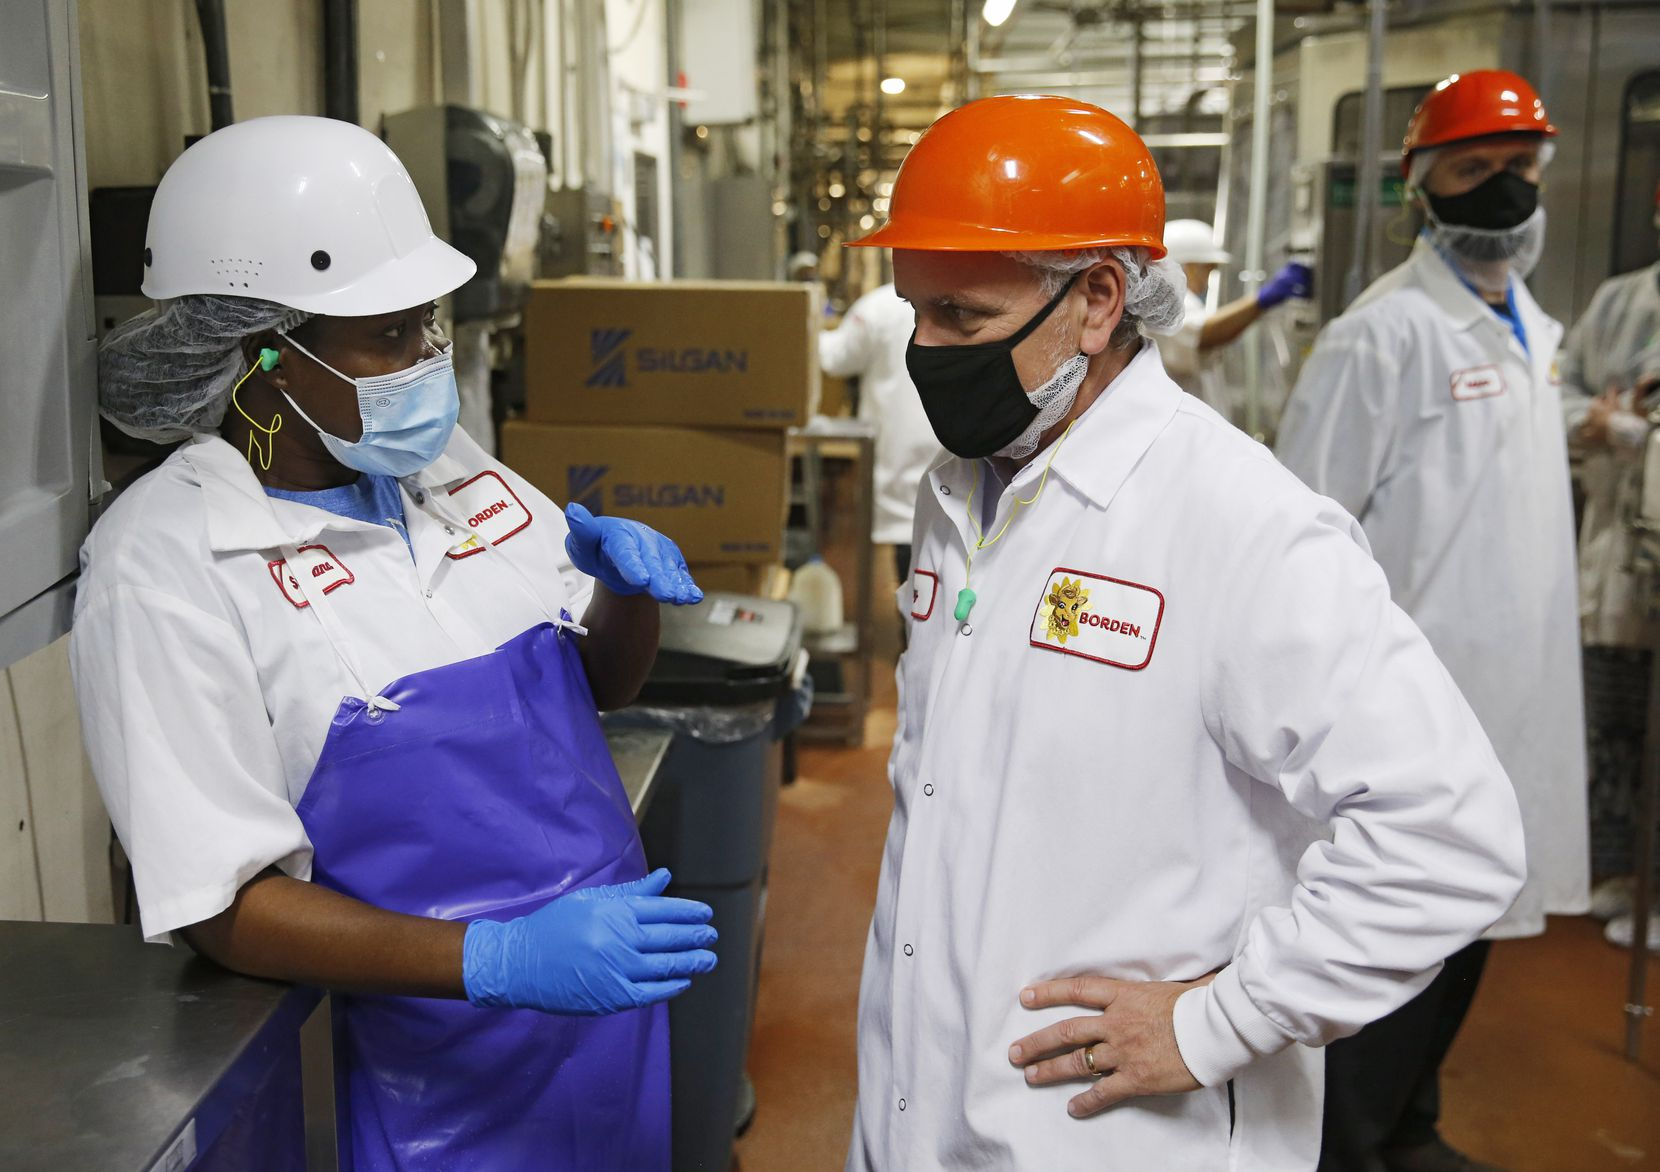 Borden employee Betty Anthony talks with CEO Tony Sarsam in the bottling area at Borden Dairy Co.